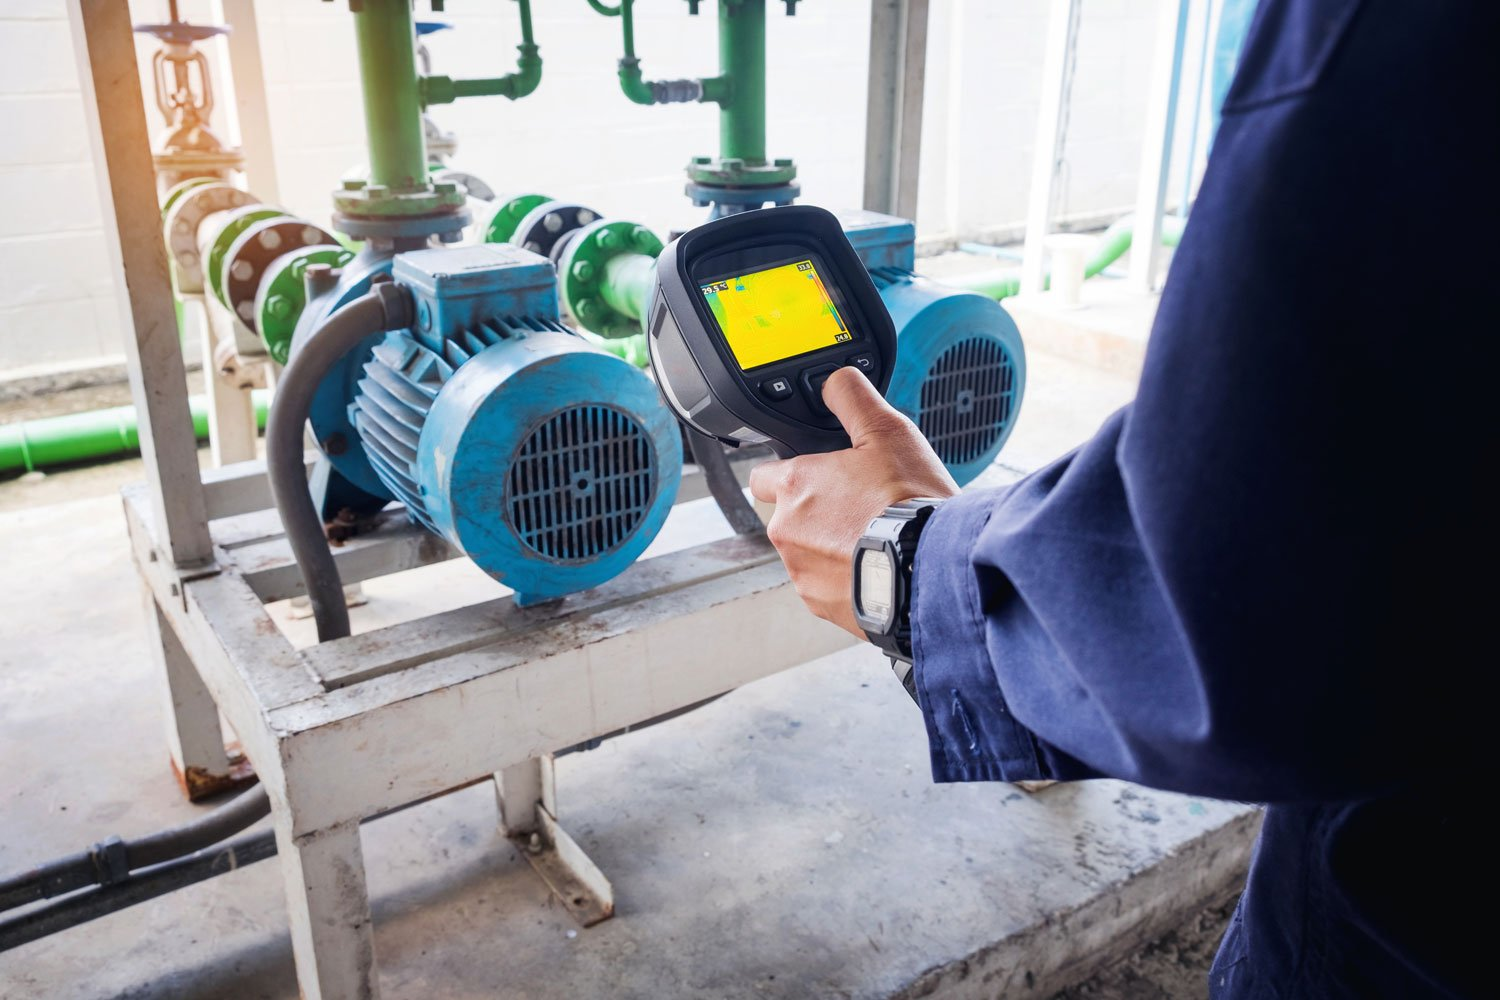 The benefits of predictive maintenance